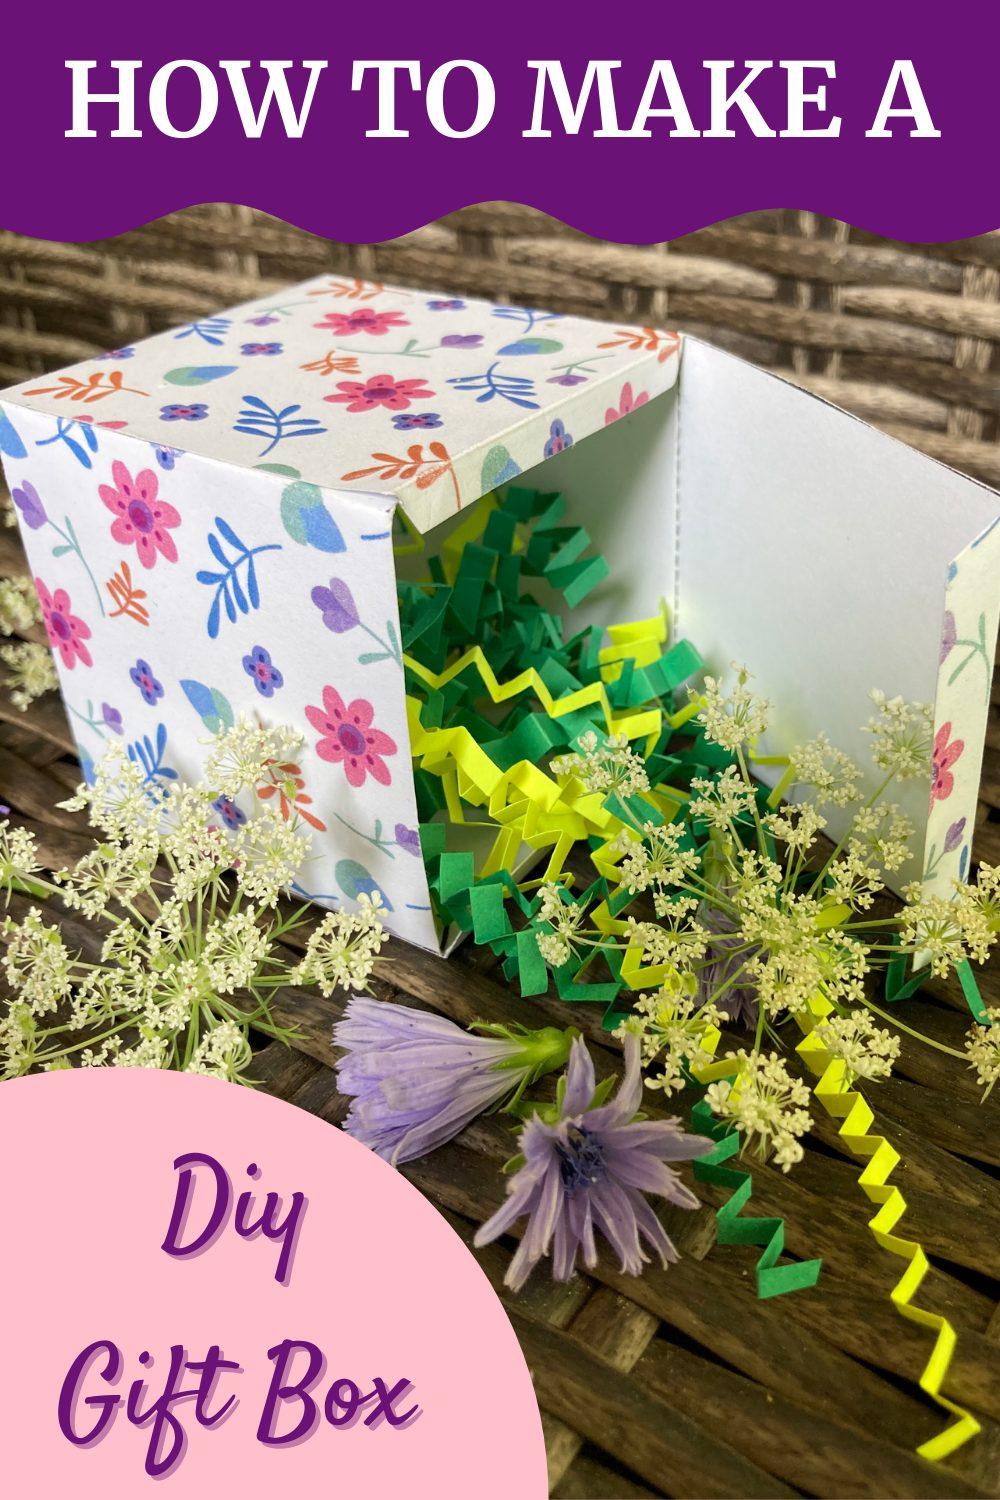 Learn how to make a DIY Gift Box using a printable template and a cut file. Great craft idea for gifting, holidays and customizing favors. Full tutorial and resources available on our site! #giftbox #diygiftbox #diy #craftideas #handmade #nymelrosefamily via @jennymelrose